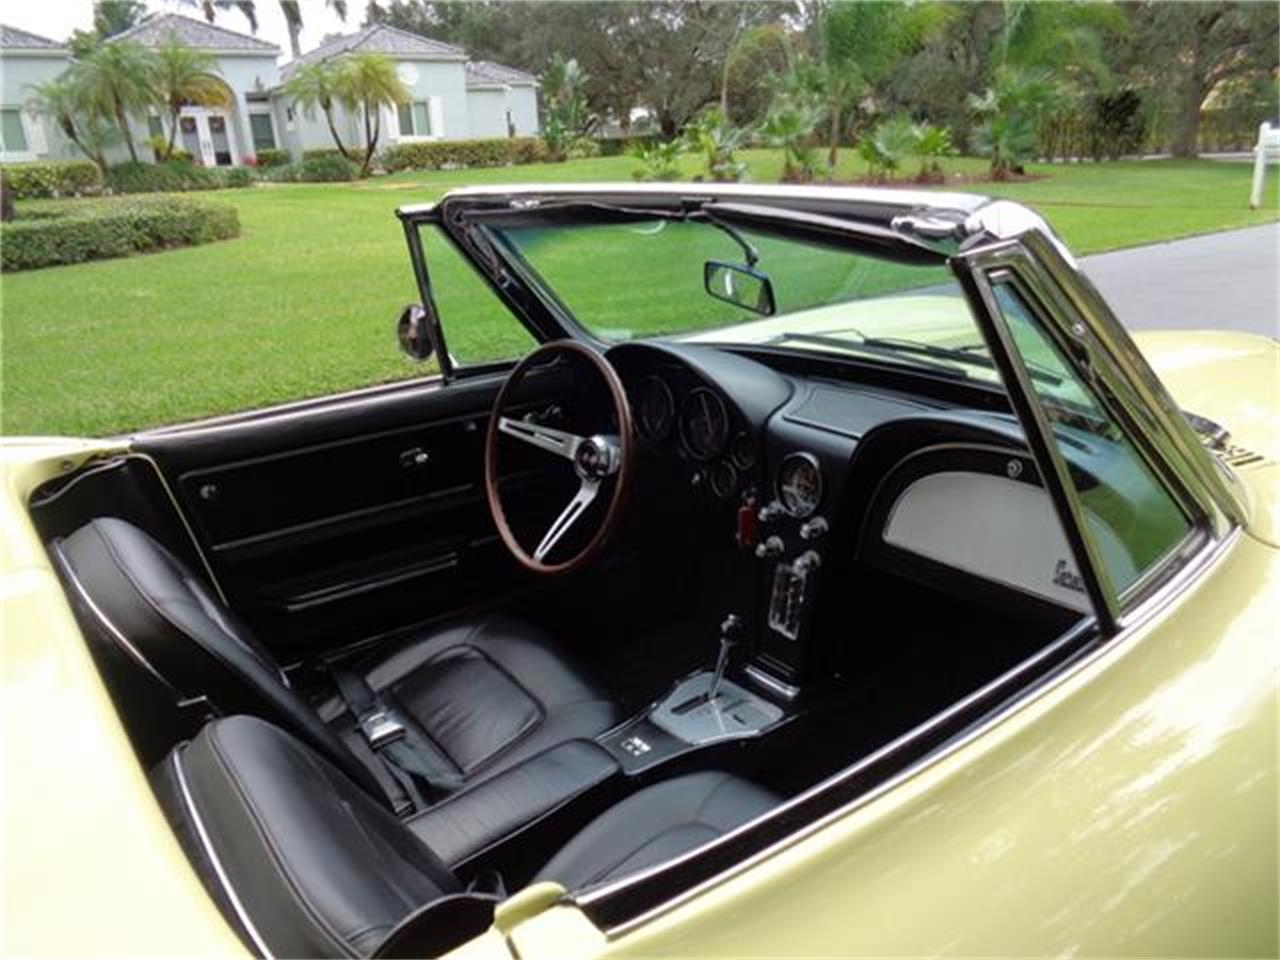 Large Picture of 1965 Chevrolet Corvette Offered by a Private Seller - Q216